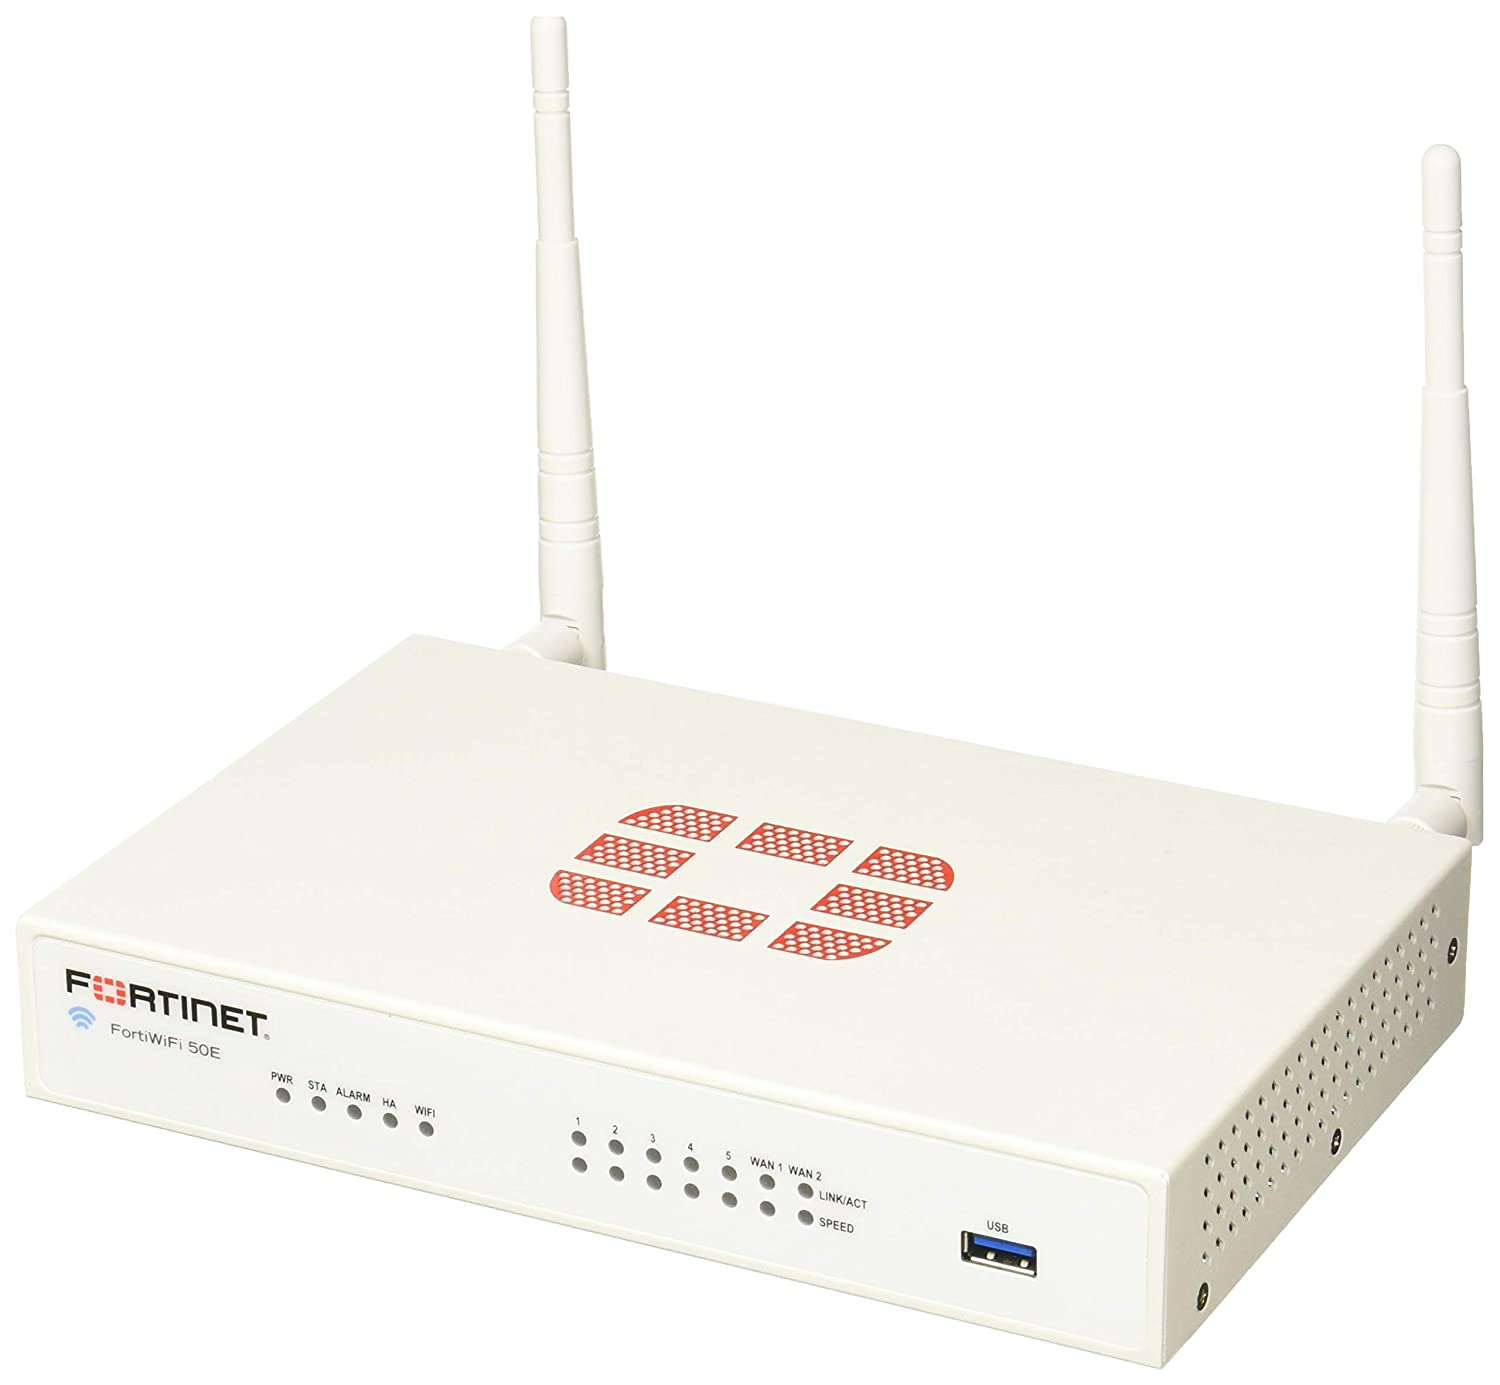 Amazon.com: FORTINET FortiWifi 50E Network Security/Firewall ...